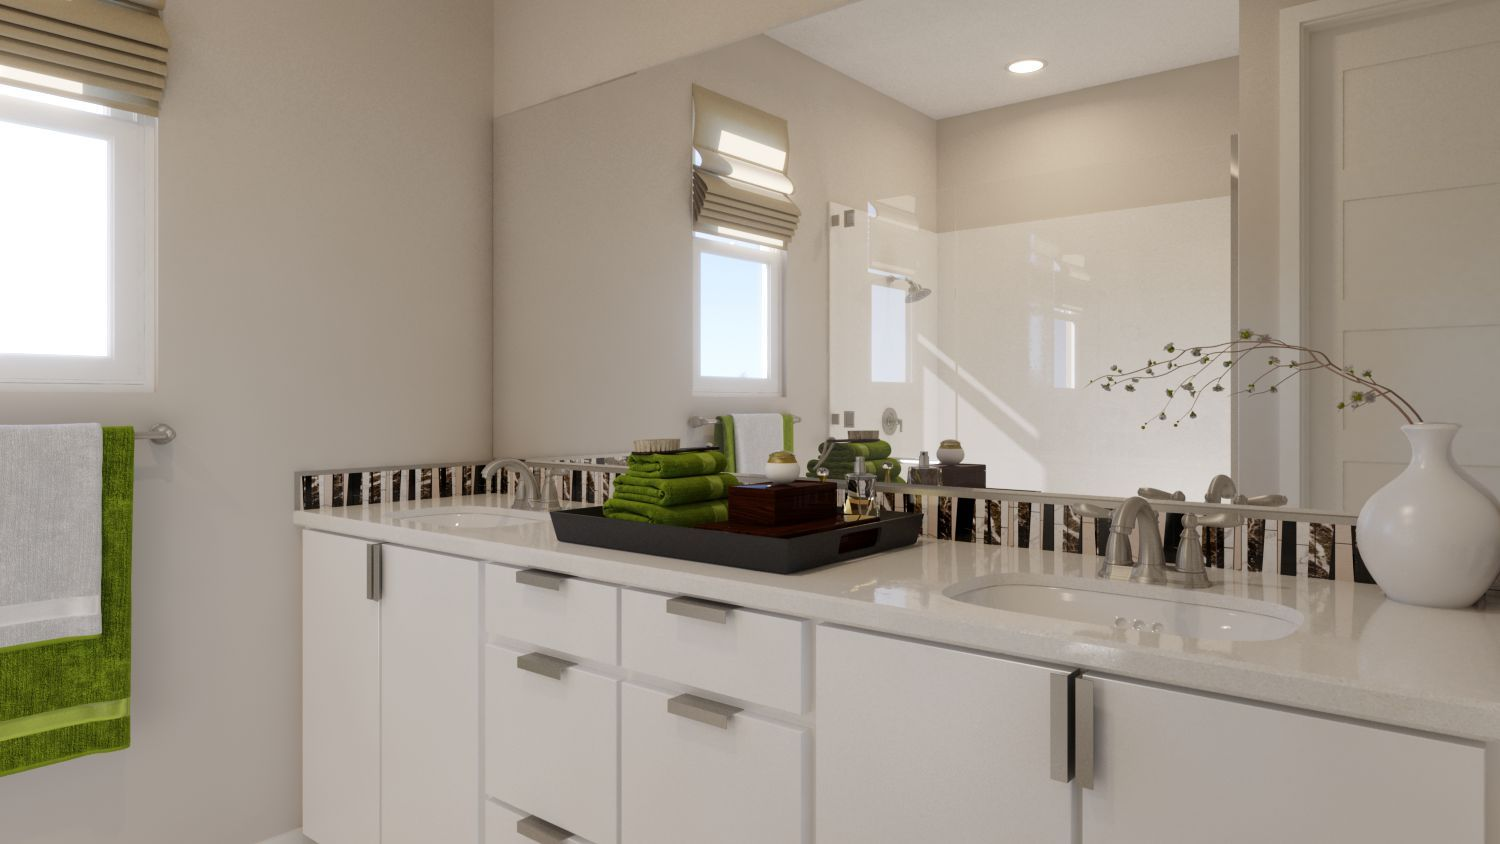 Bathroom featured in the Residence 8 By TRI Pointe Homes in Oakland-Alameda, CA